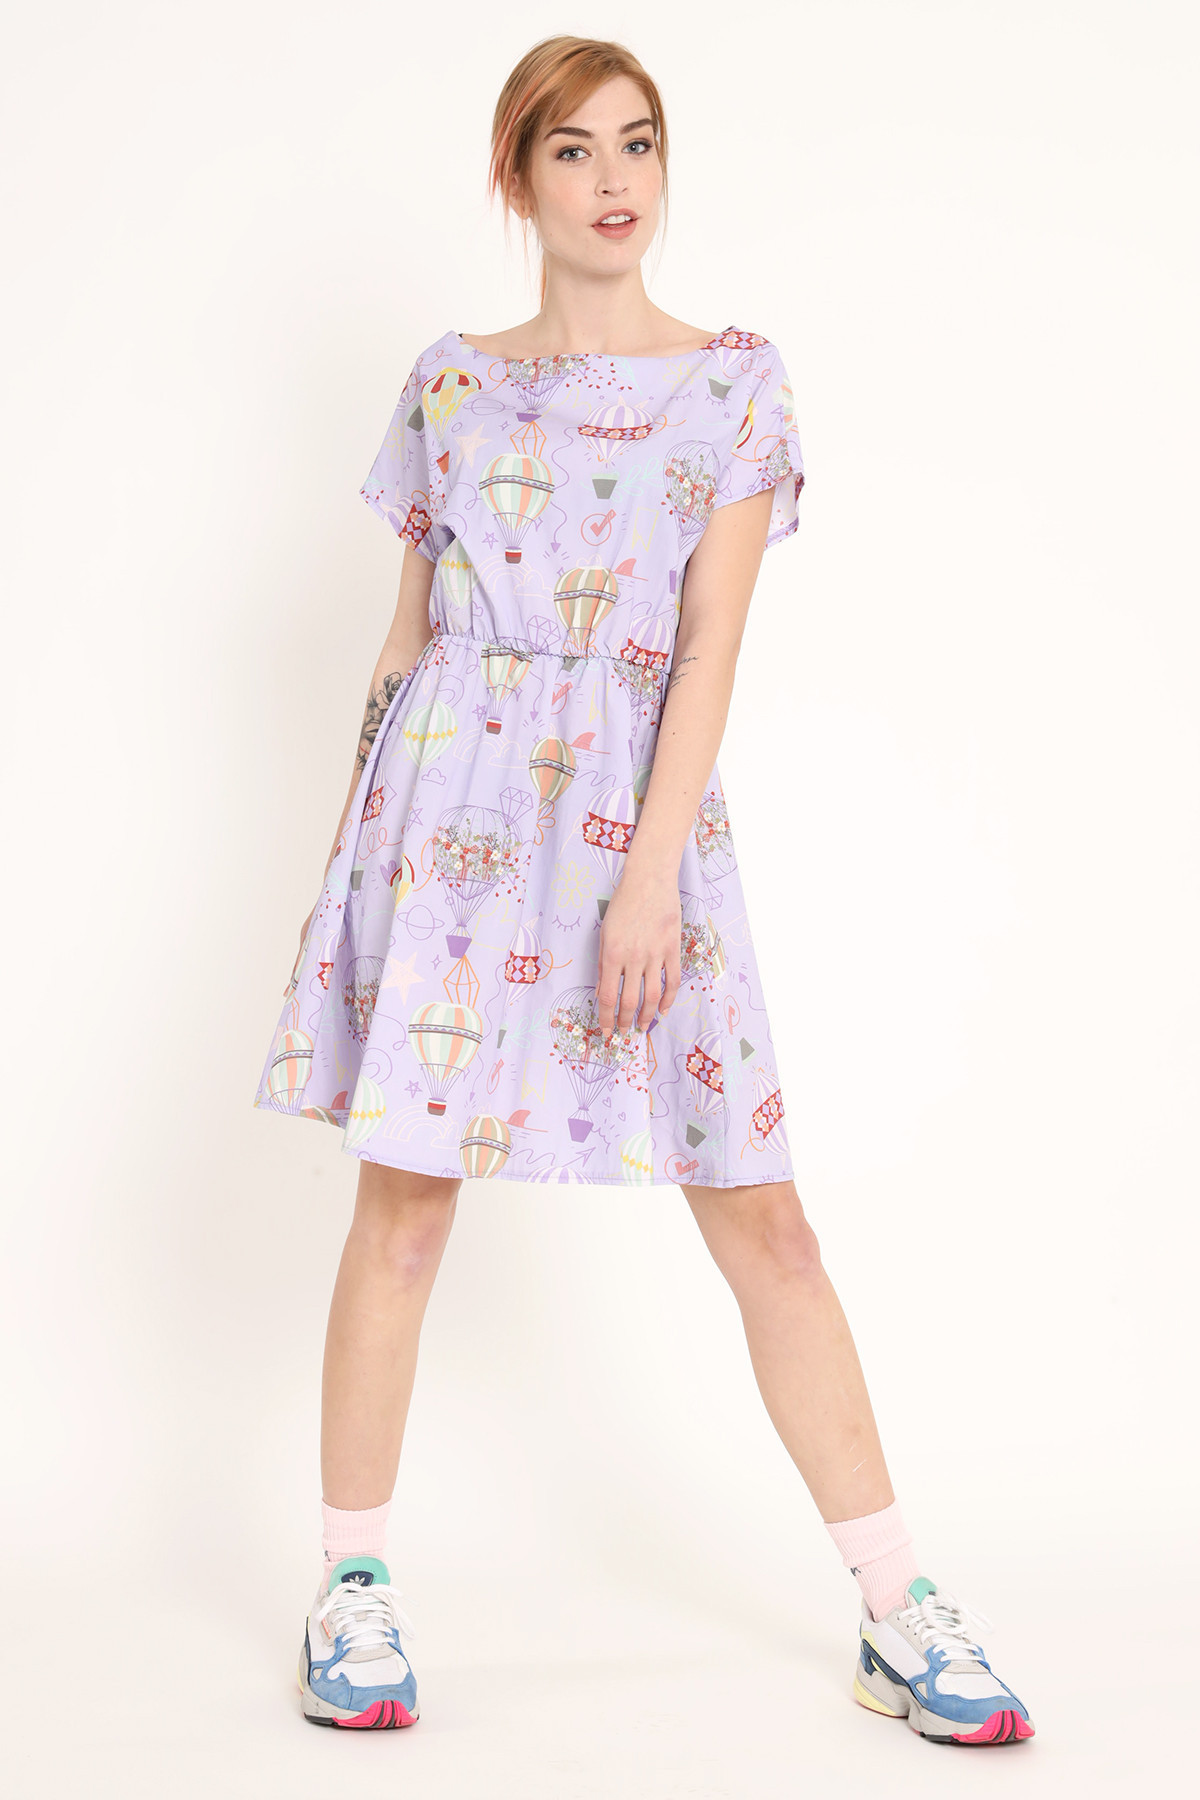 Cotton Dress with Hot Air Balloon Prints